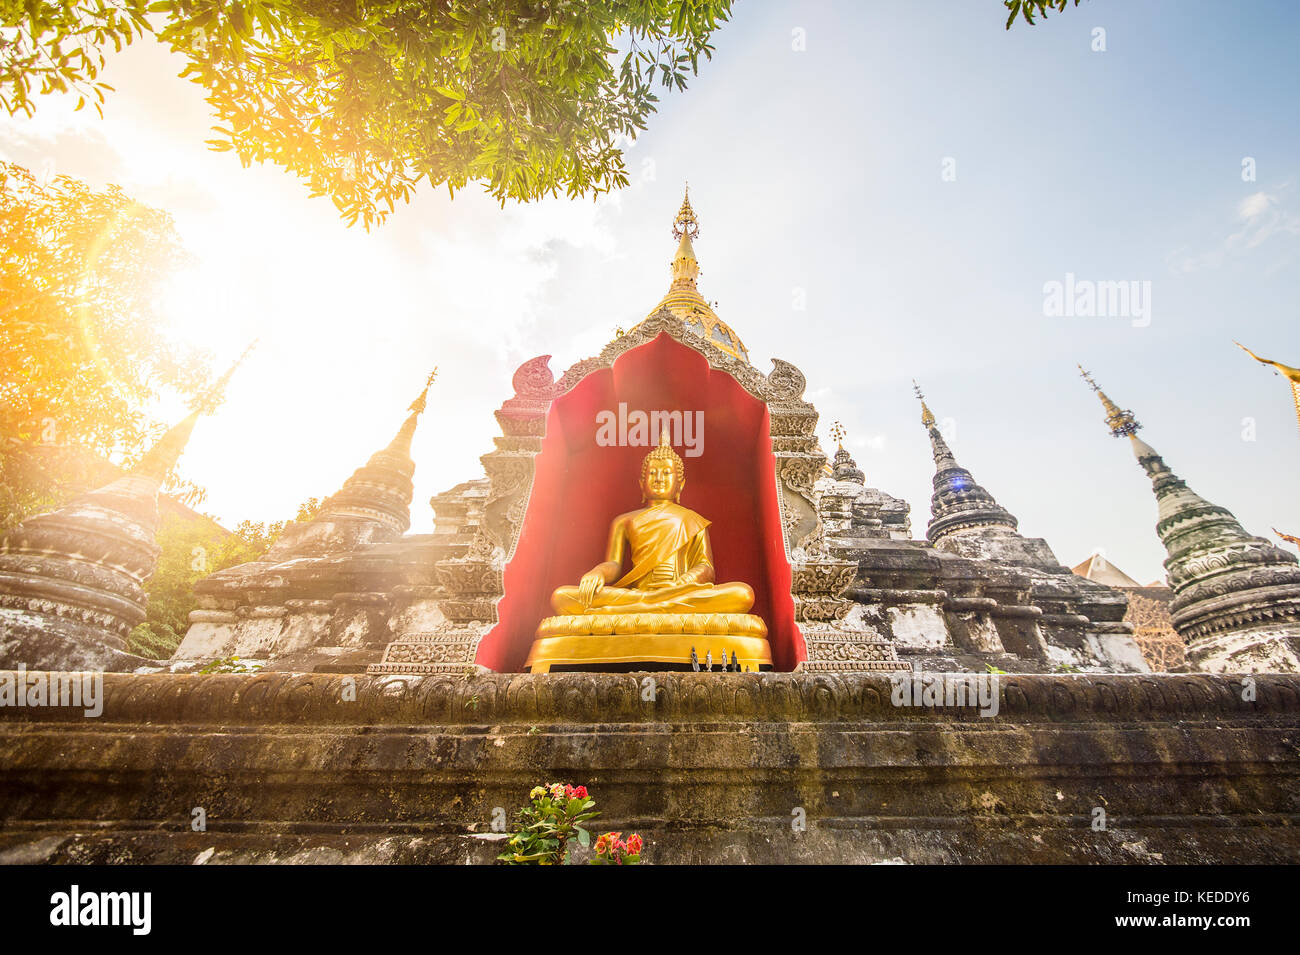 A buddha statue in one of the many Teples in Bangkok, Thailand. - Stock Image